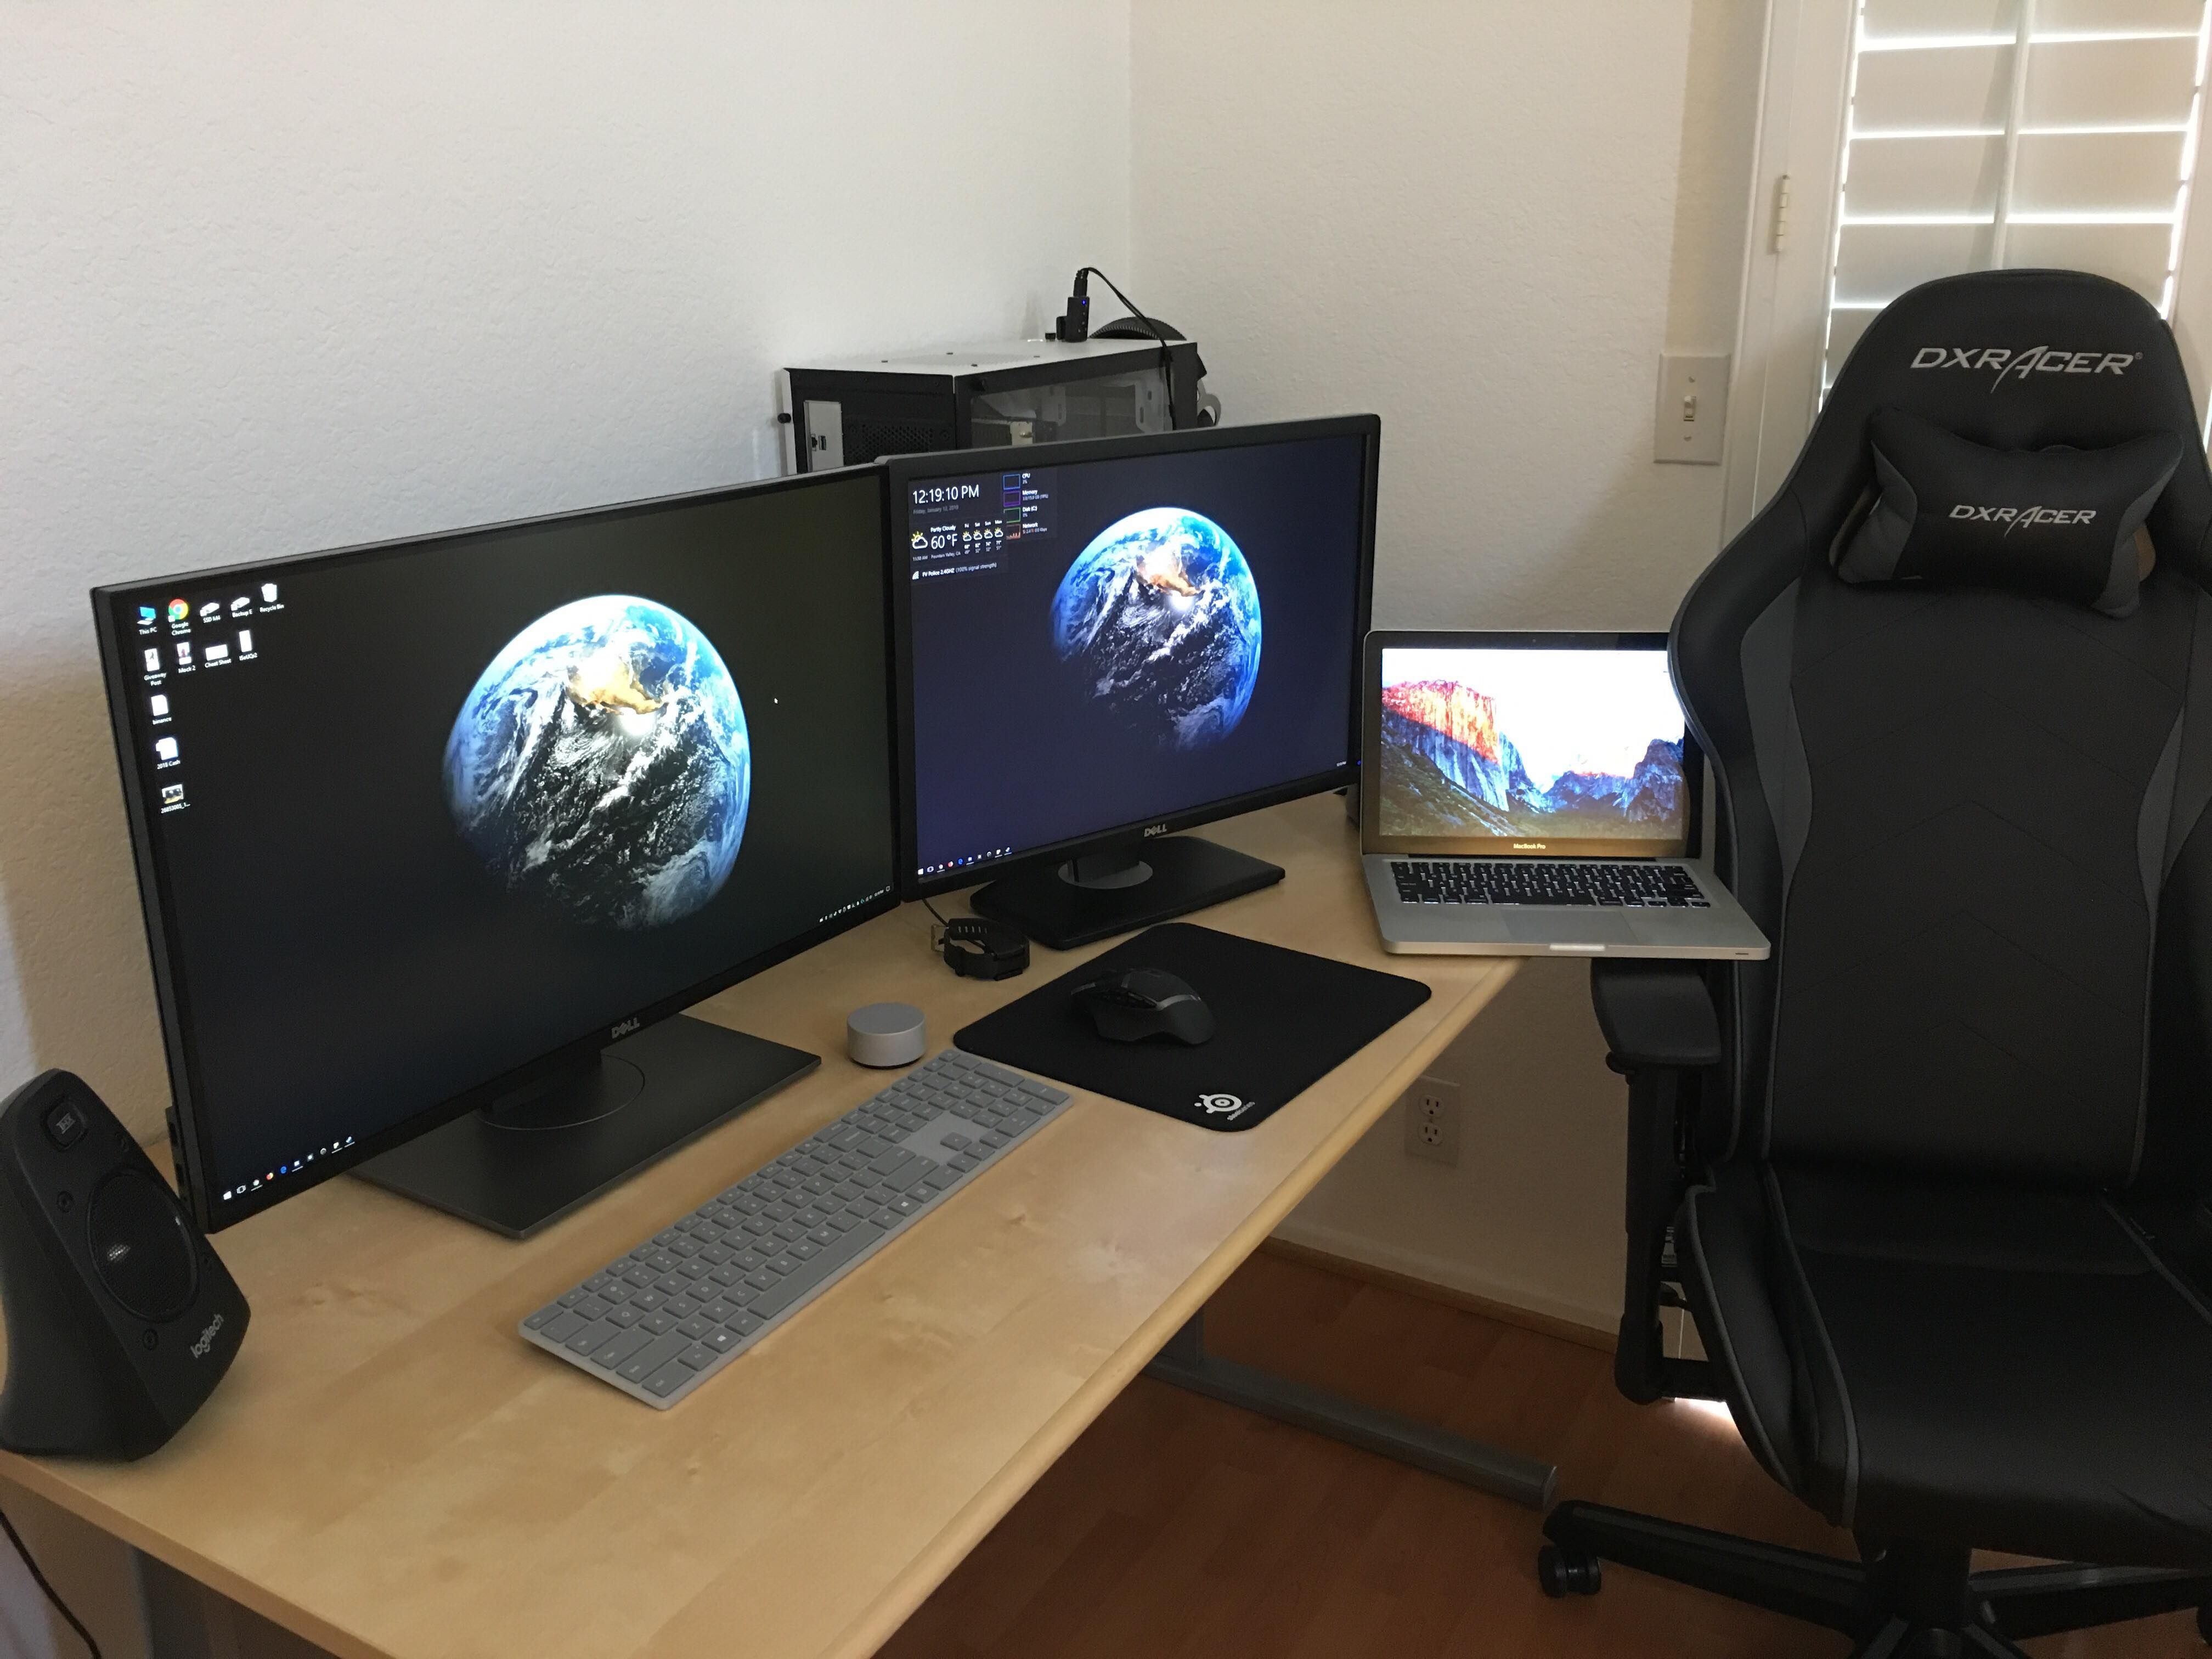 Simplicity 2018. Work Casual Gaming station. Gaming